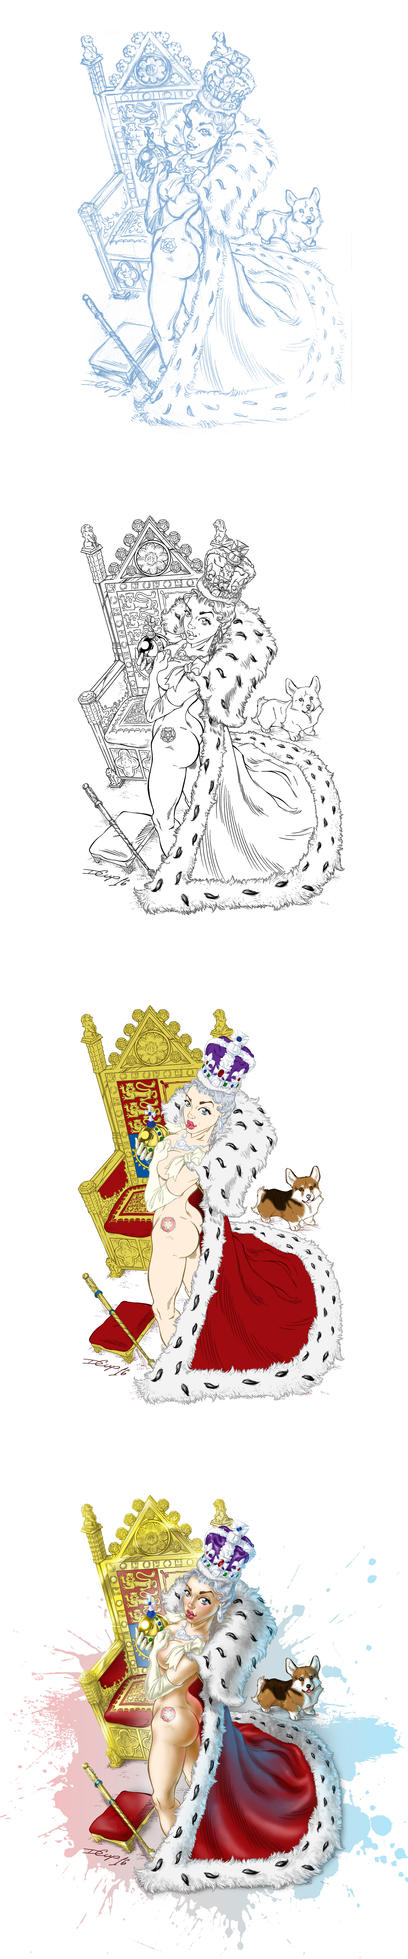 The Queen. Inking and coloring by Inshader